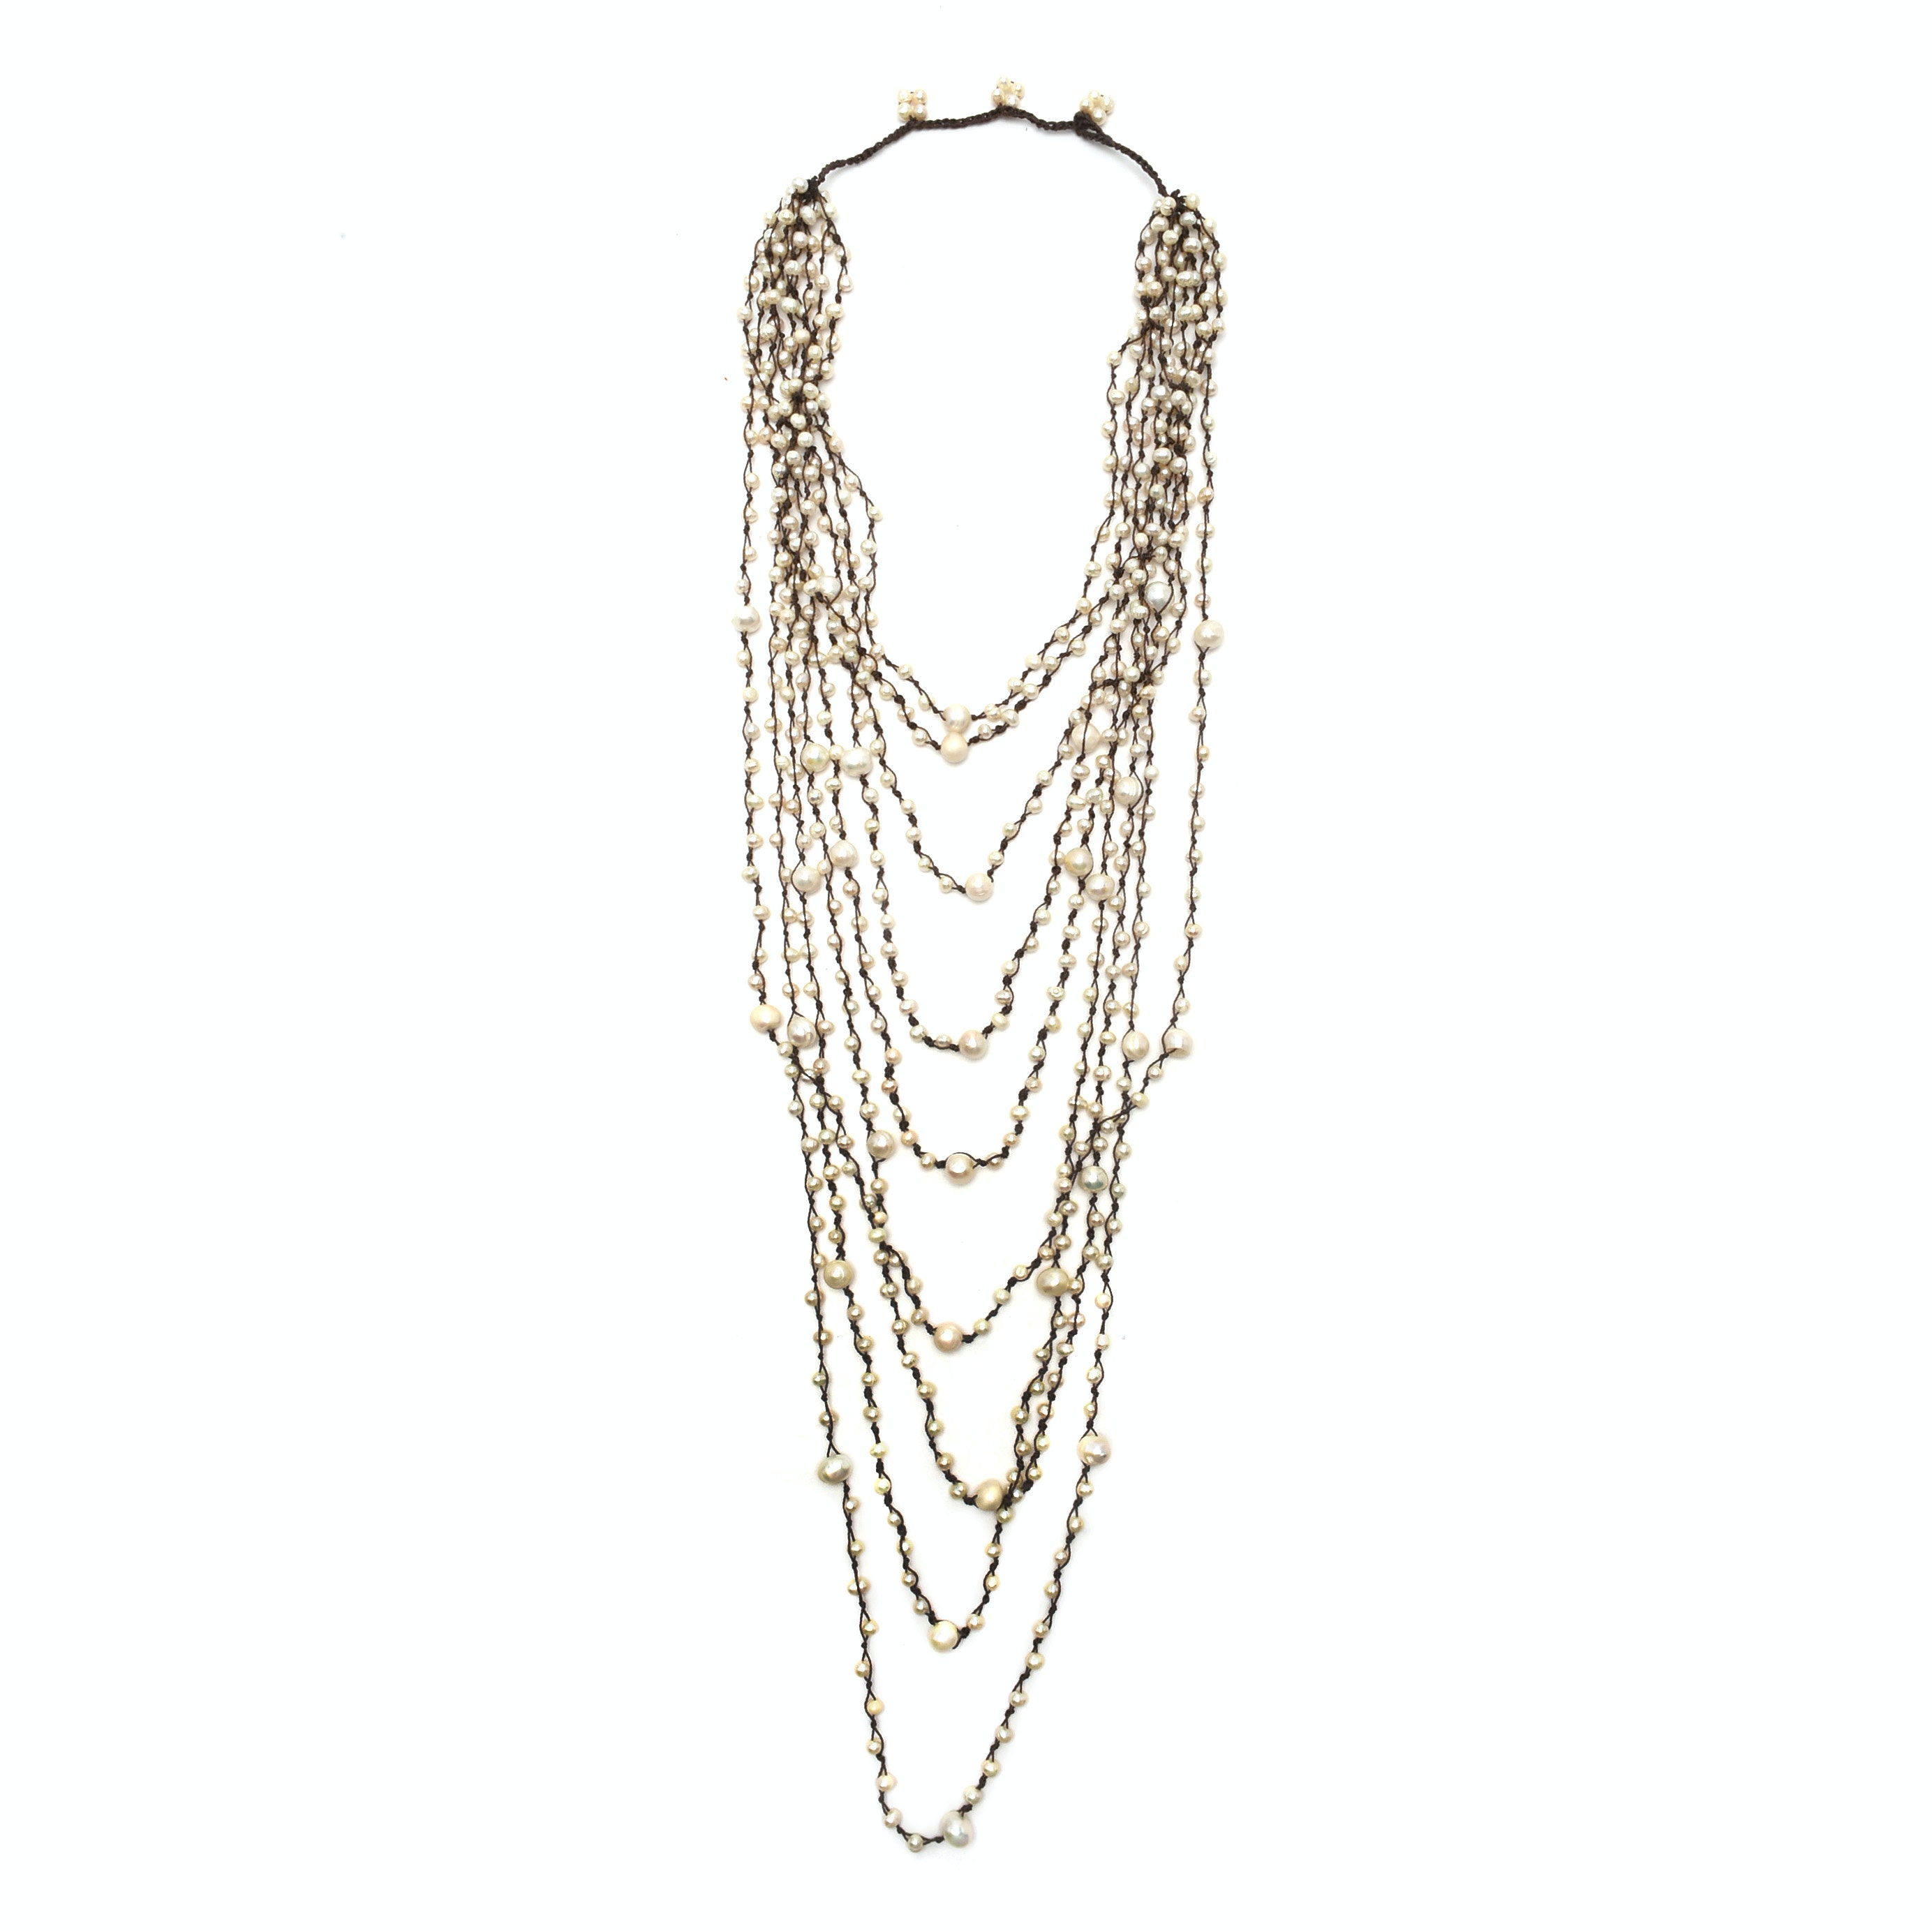 Nine-Strand Cultured Pearl Knotted Necklace